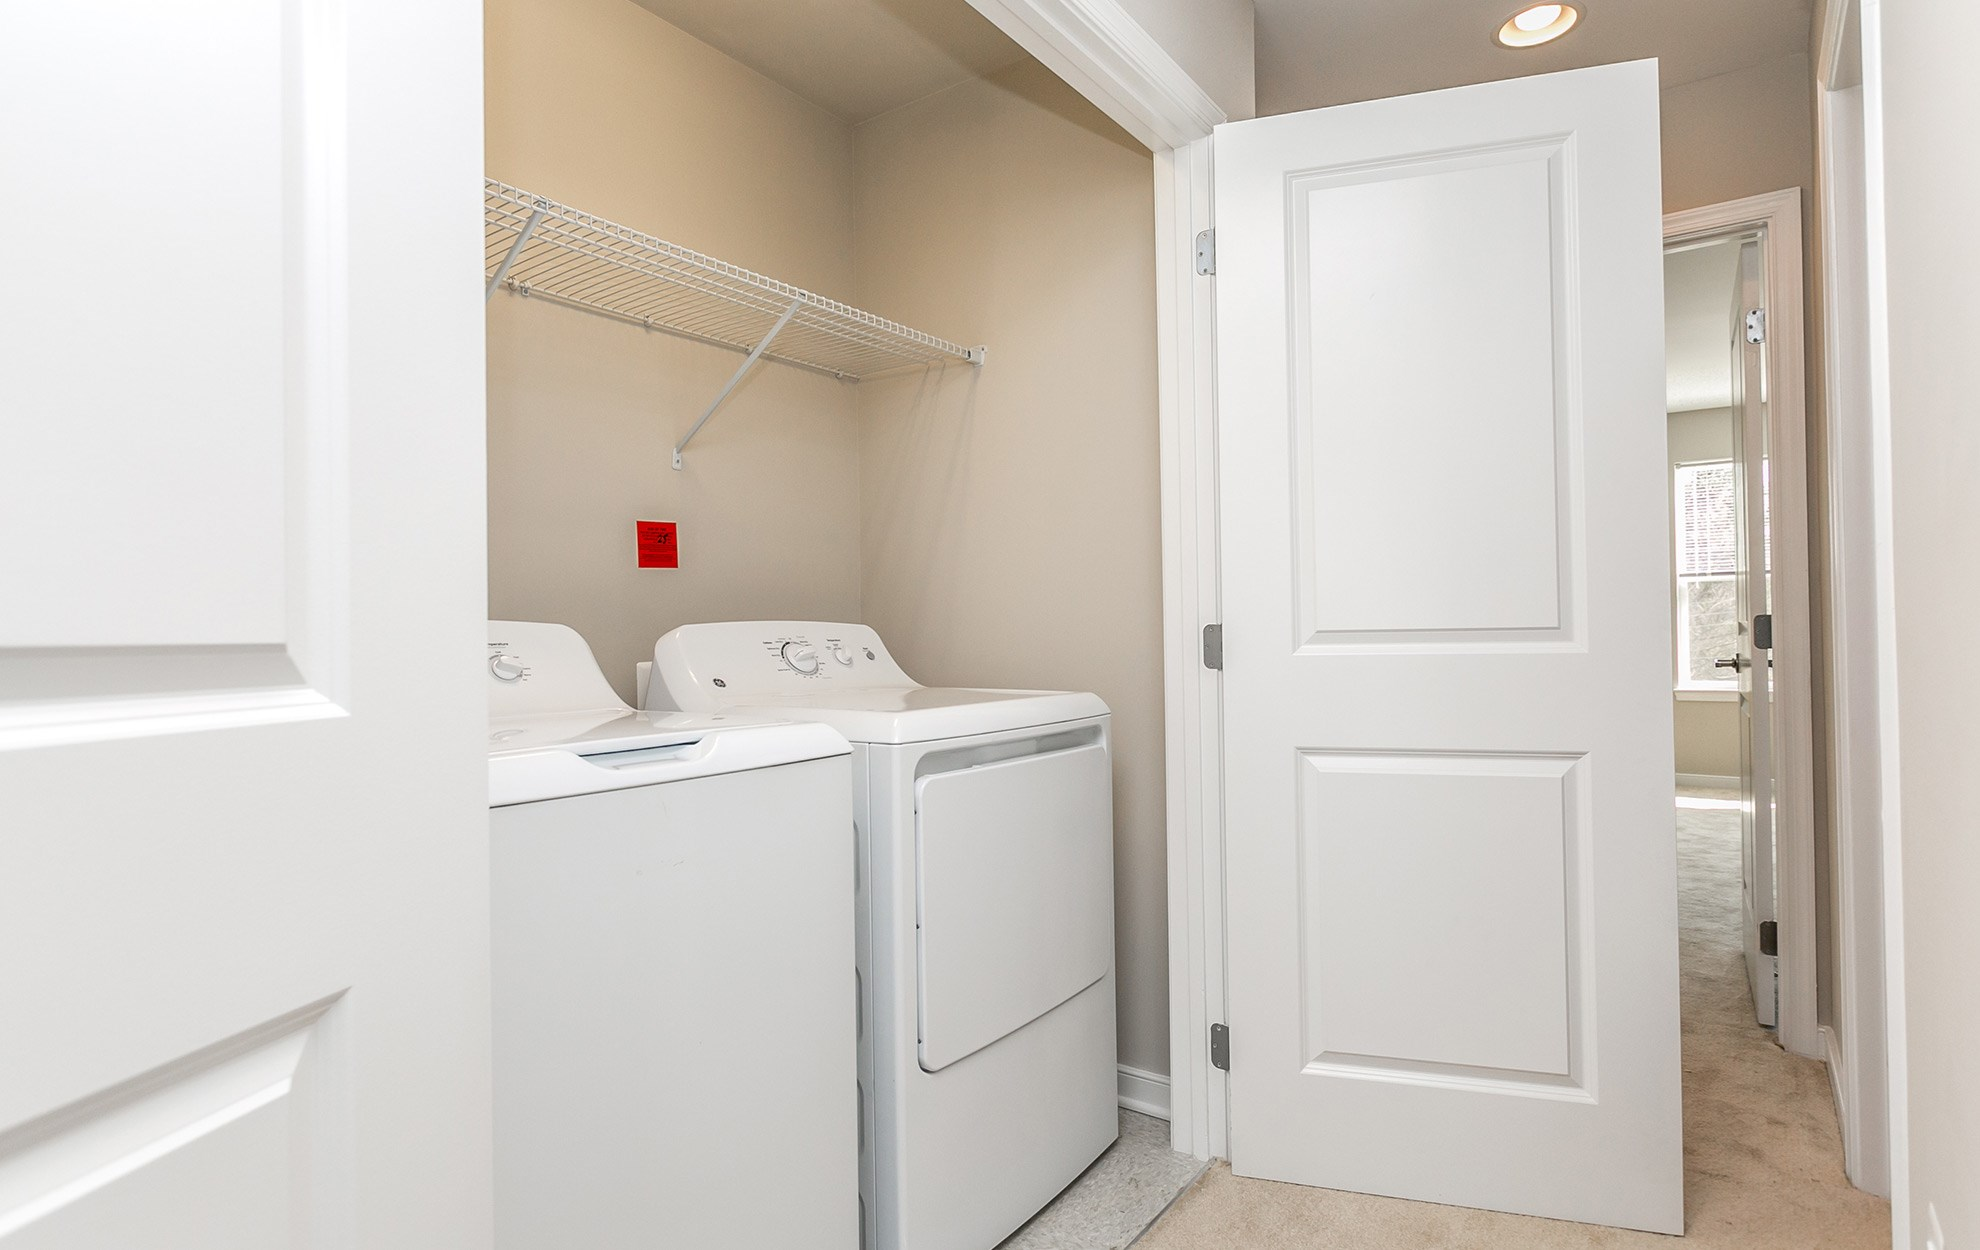 In-Home Washer and Dryer at Townes at Pine Orchard, Ellicott City, MD